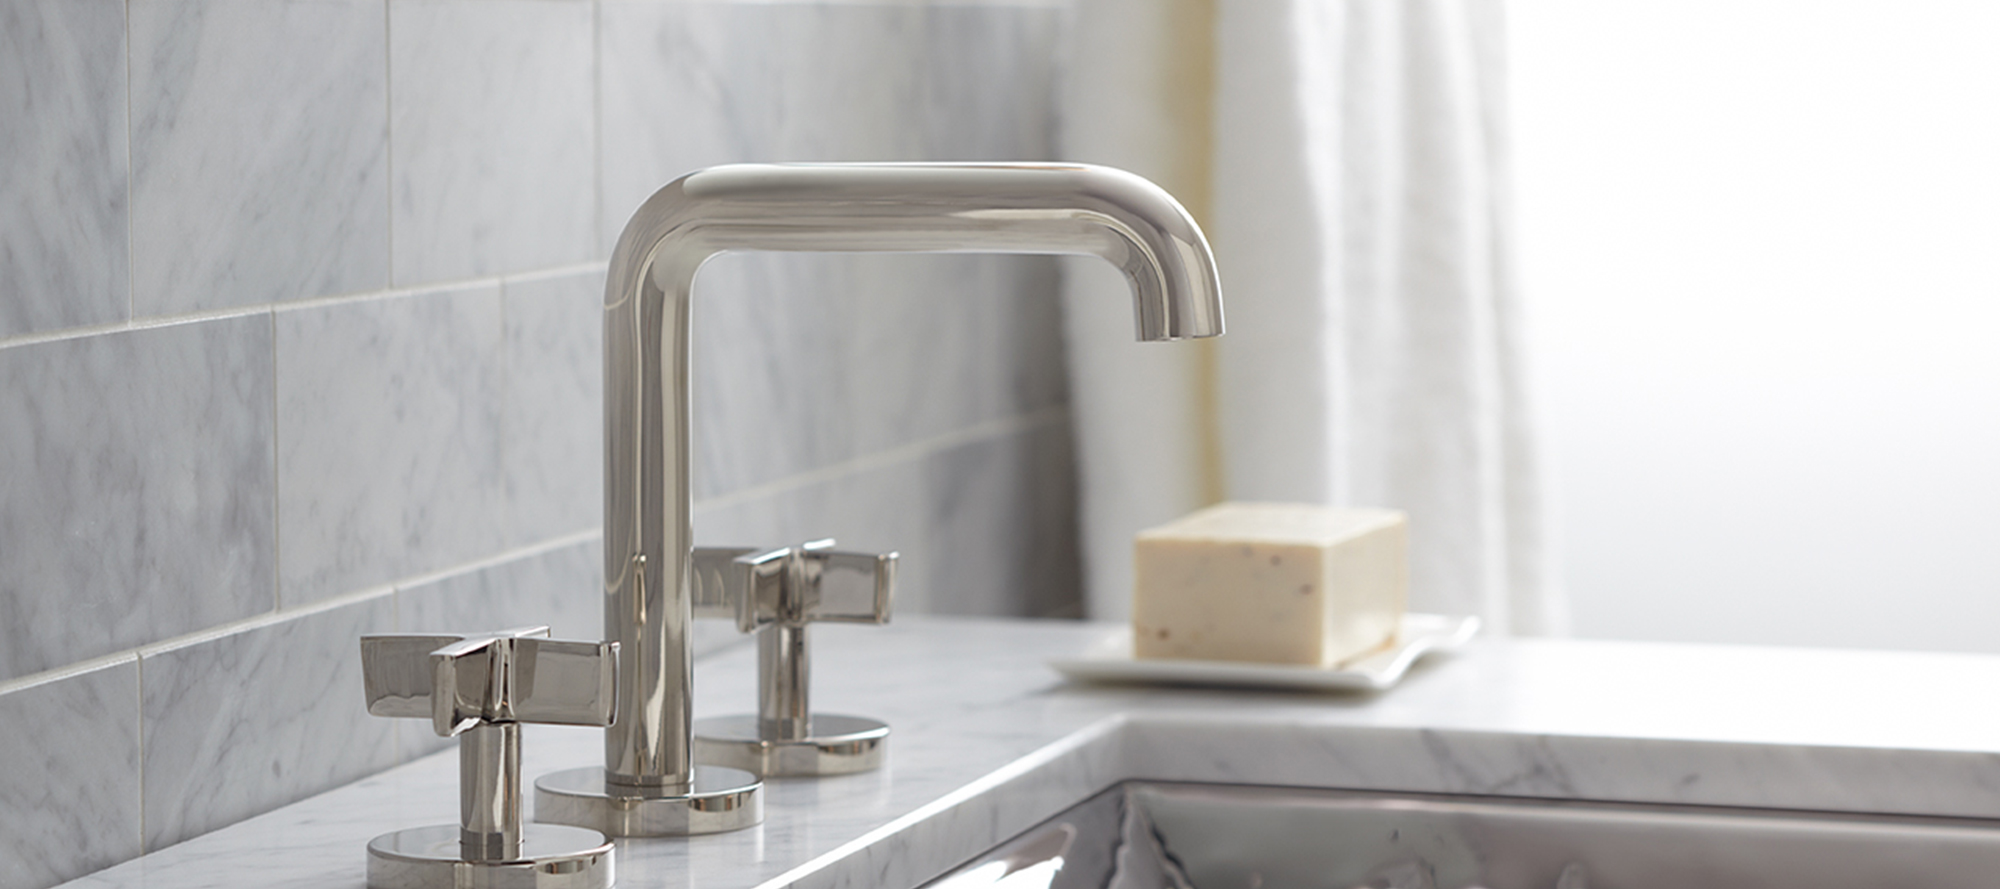 Kallista Kitchen Faucets | One Sidespray P25210 00 Kitchen Accessories Kallista Kallista